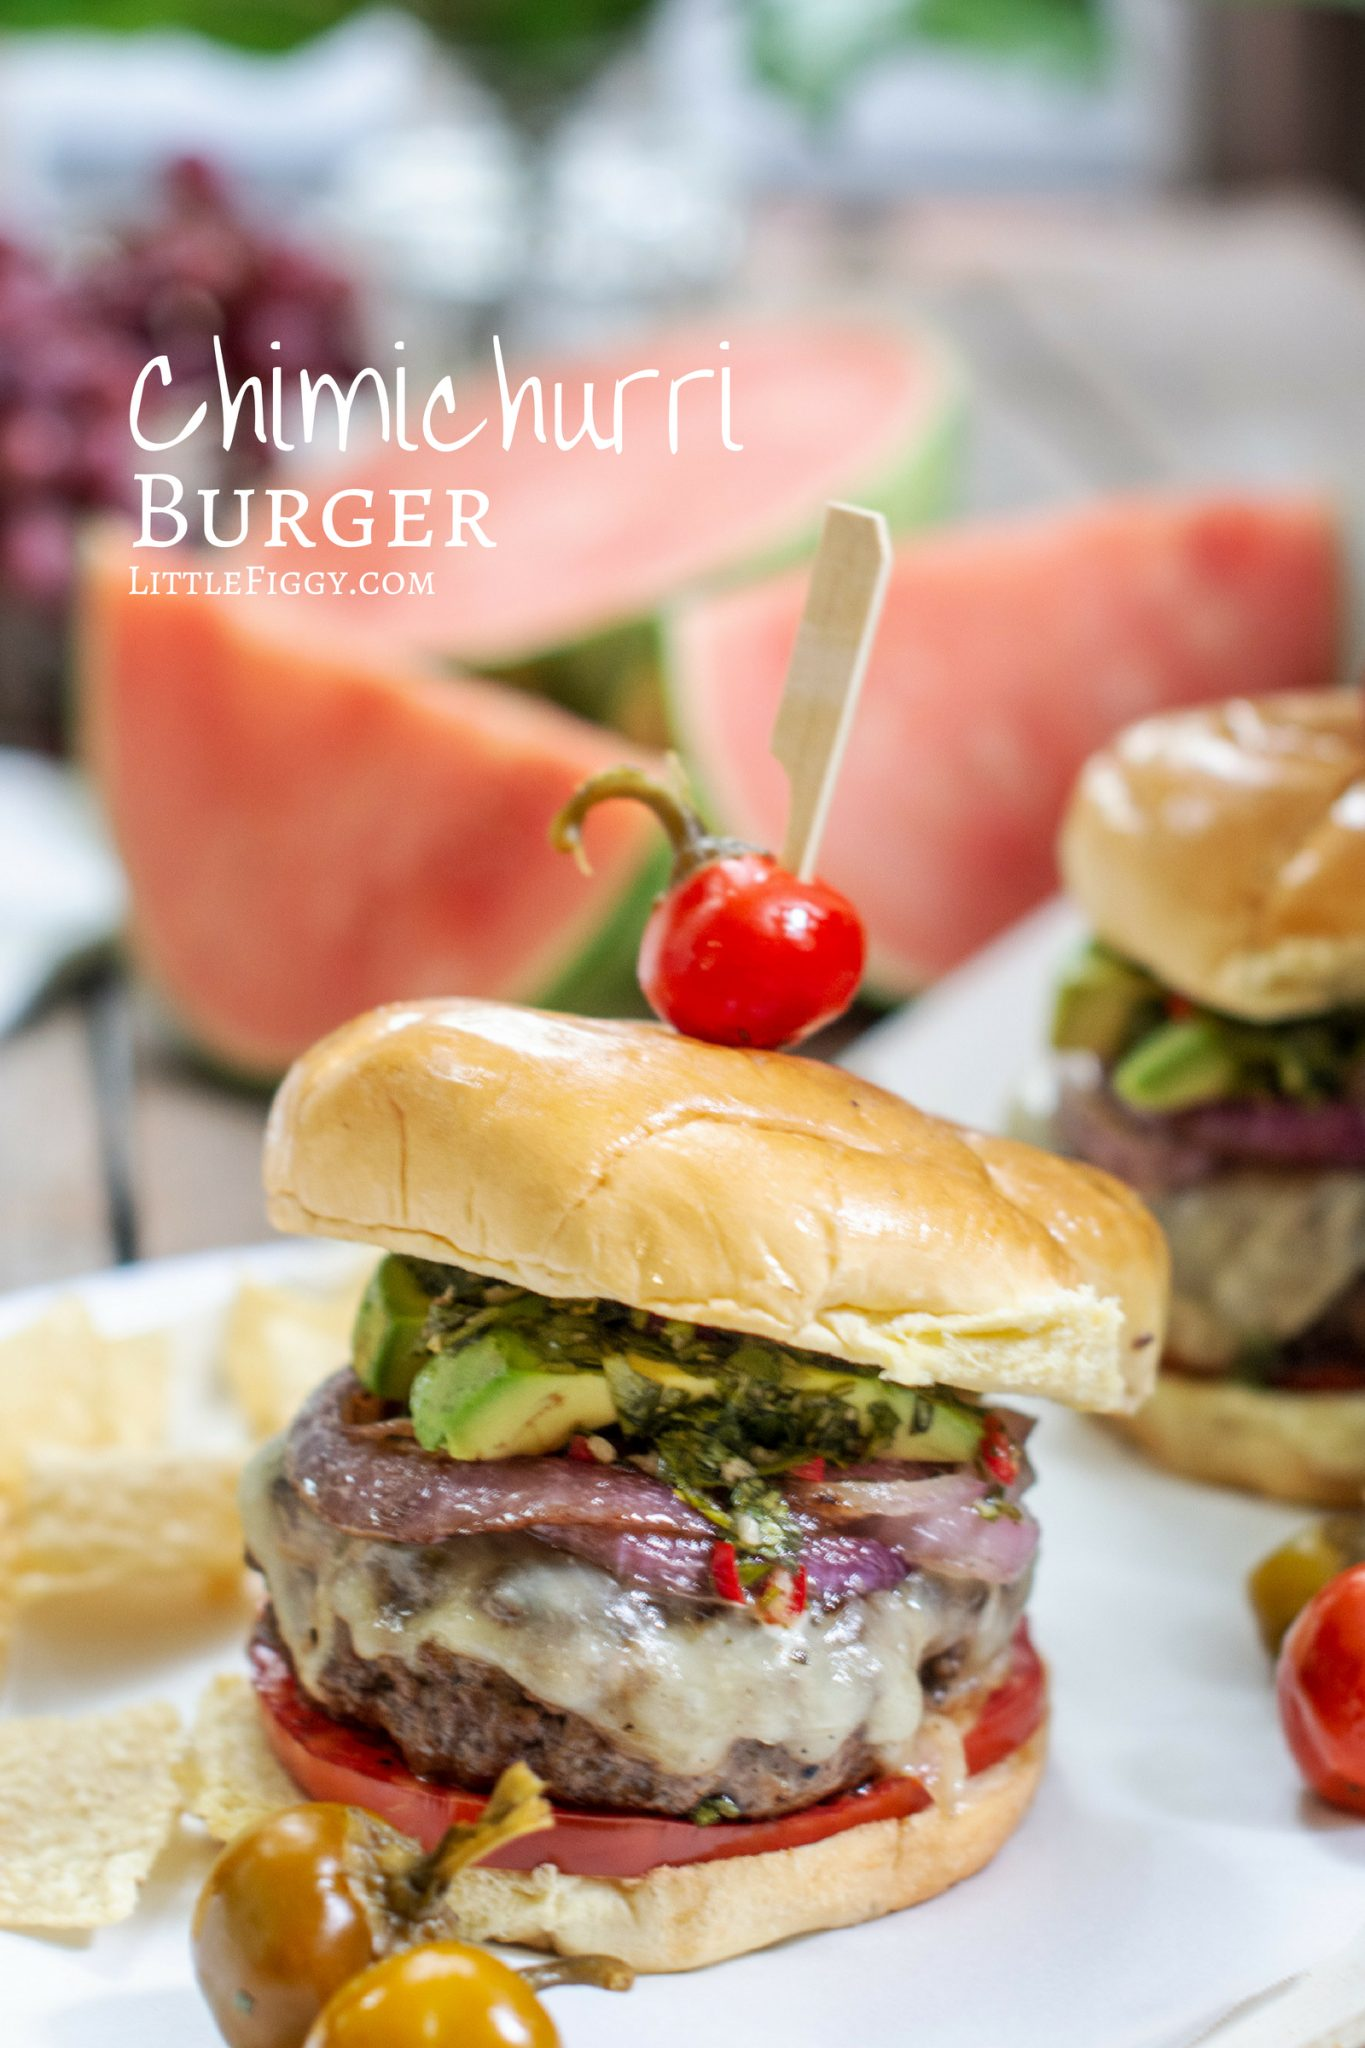 Try this gorgeous, mile high Chimichurri Burger Recipe plus find more burger ideas for your next summer #BBQ! #RespectTheBun with @PepperidgeFarm. Get the recipe and enjoy! #ad